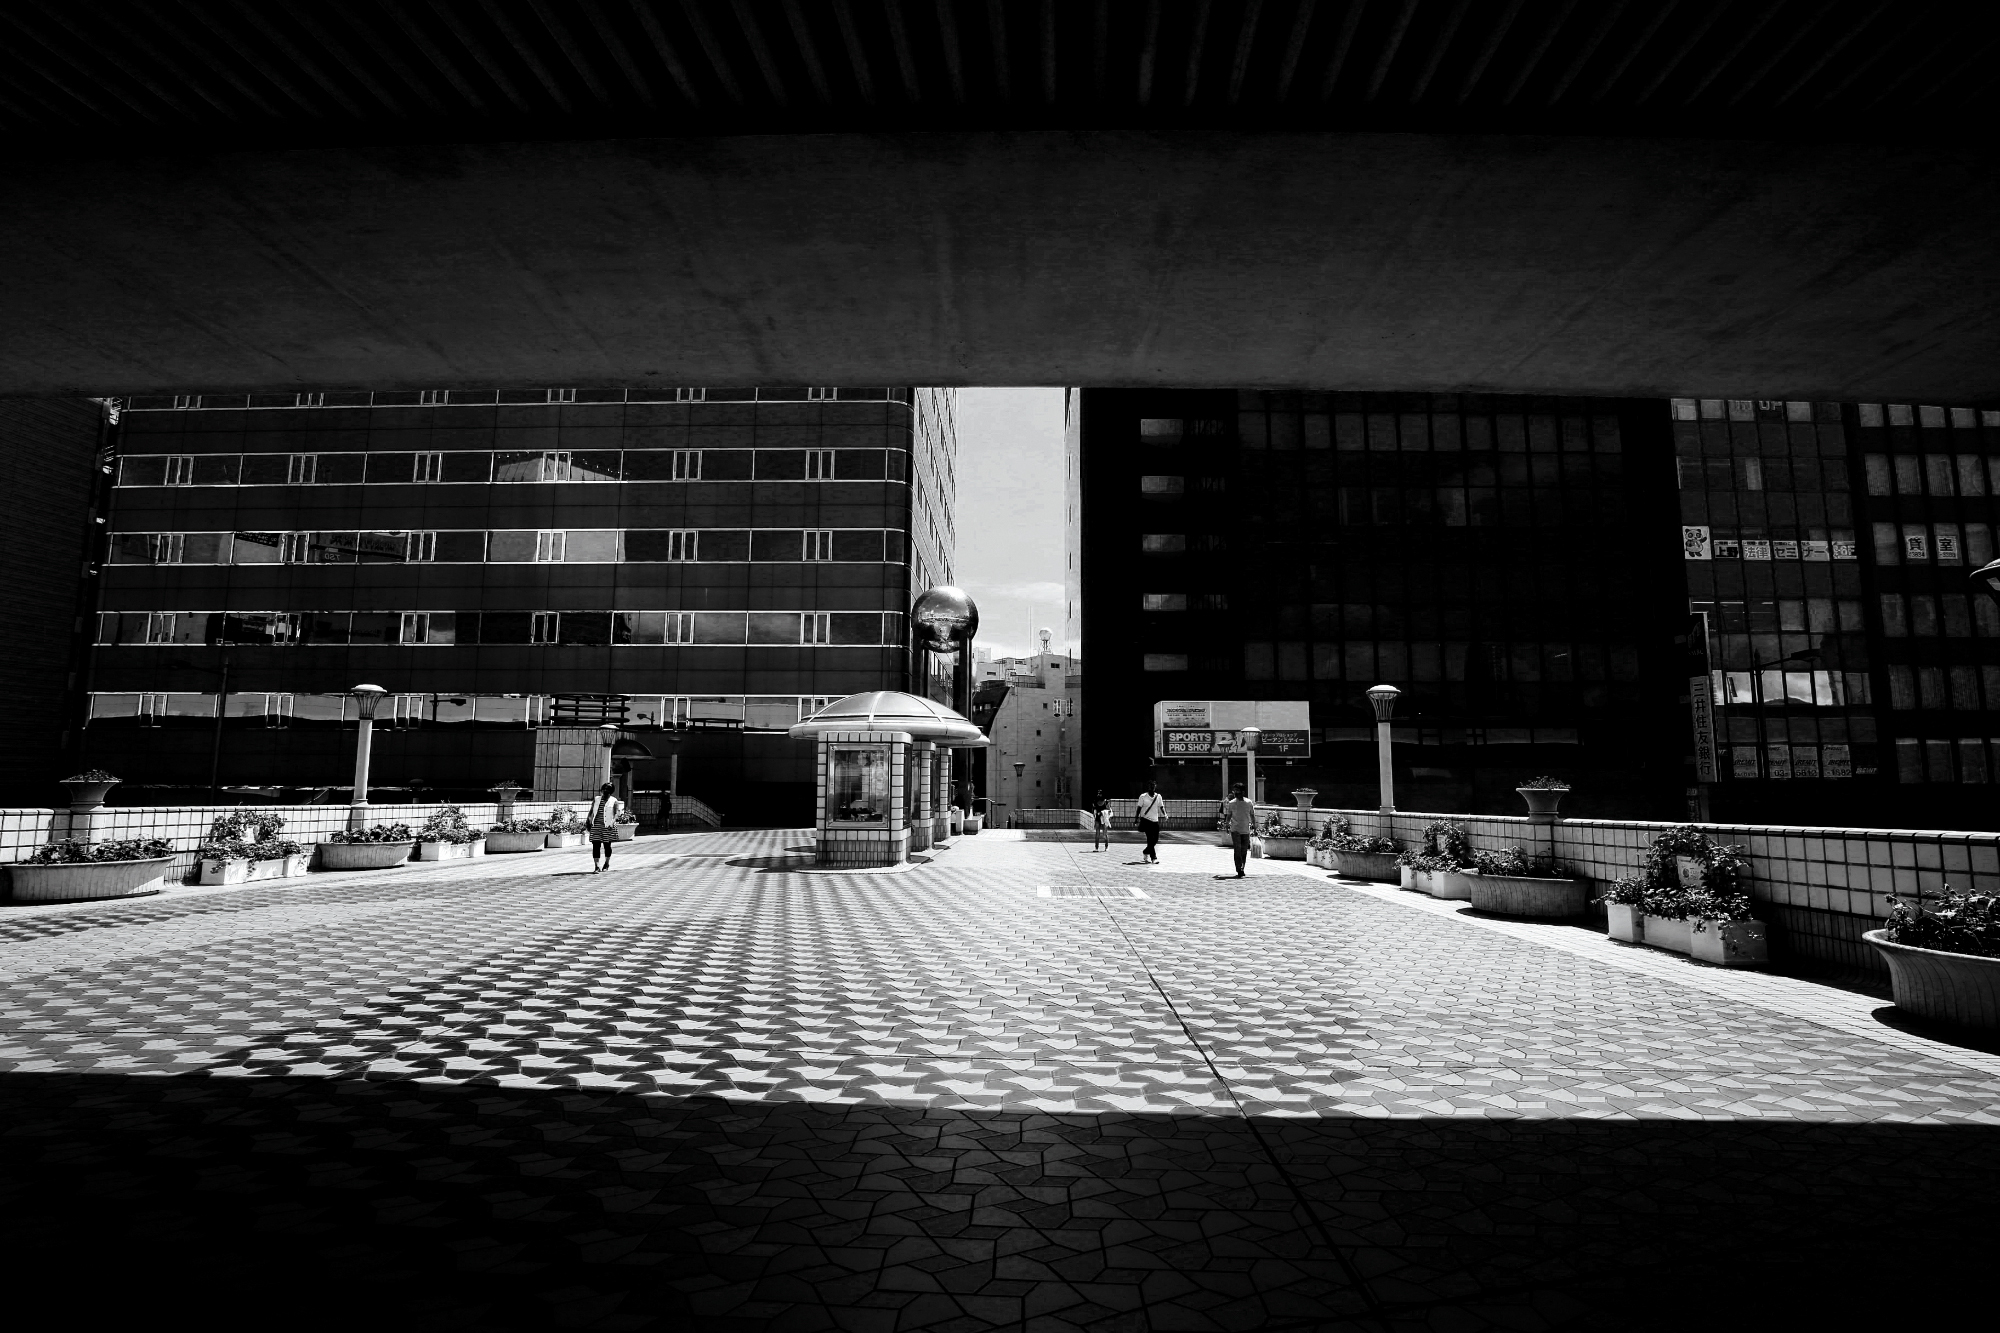 Black and white photograph of a scene filled with symmetrical lines and architecture. Taken in Tokyo, Japan